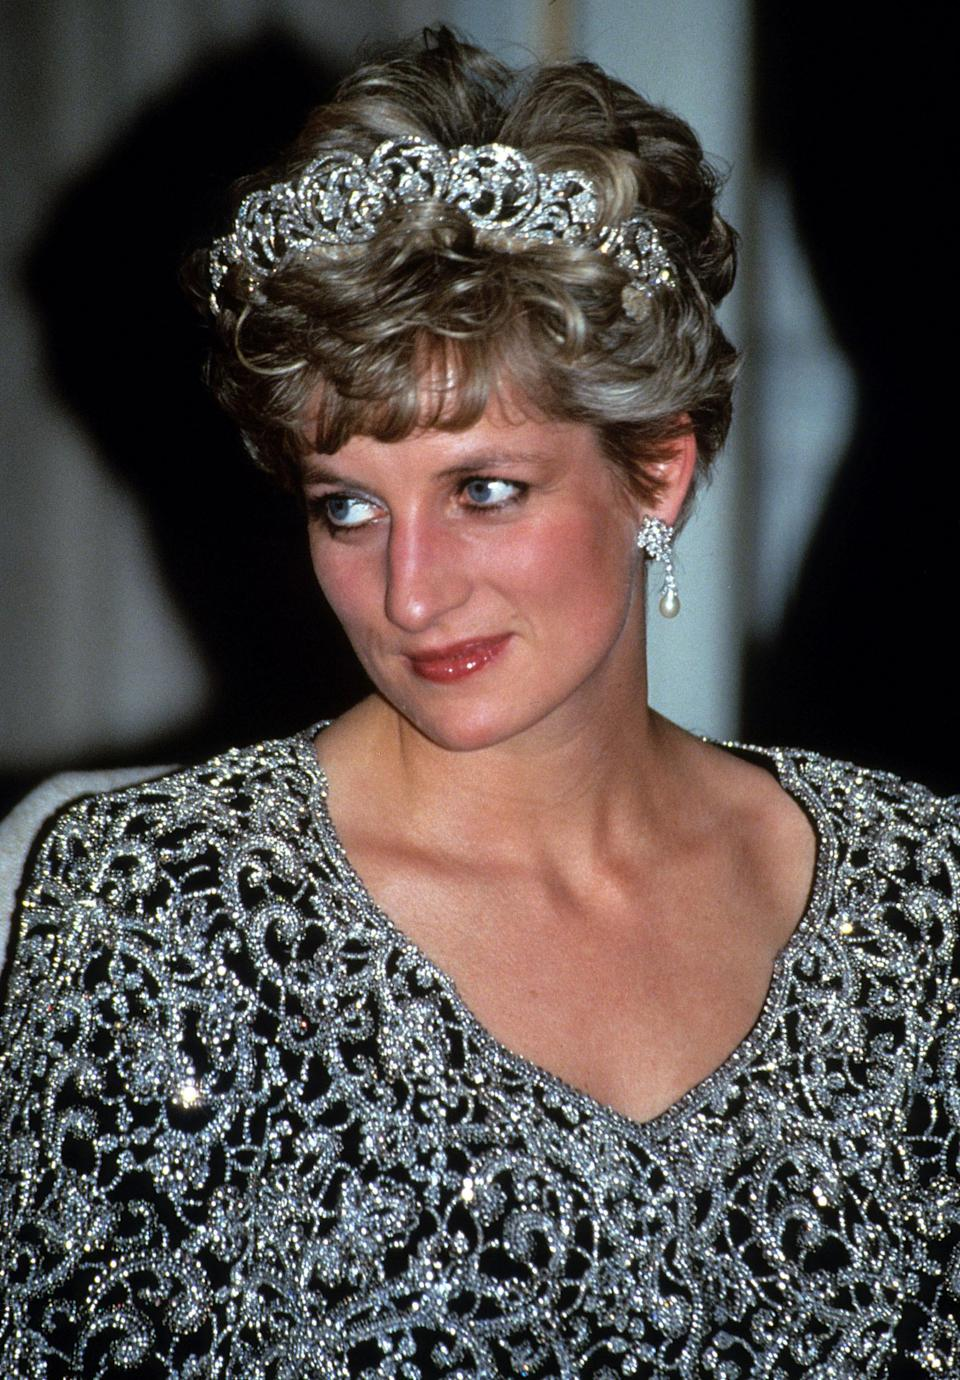 <p>During a visit to India, Princess Diana opted for a bejewelled Catherine Walker dress. She finished the look with a headful of dainty curls and of course, the family tiara.<br><em>[Photo: PA]</em> </p>